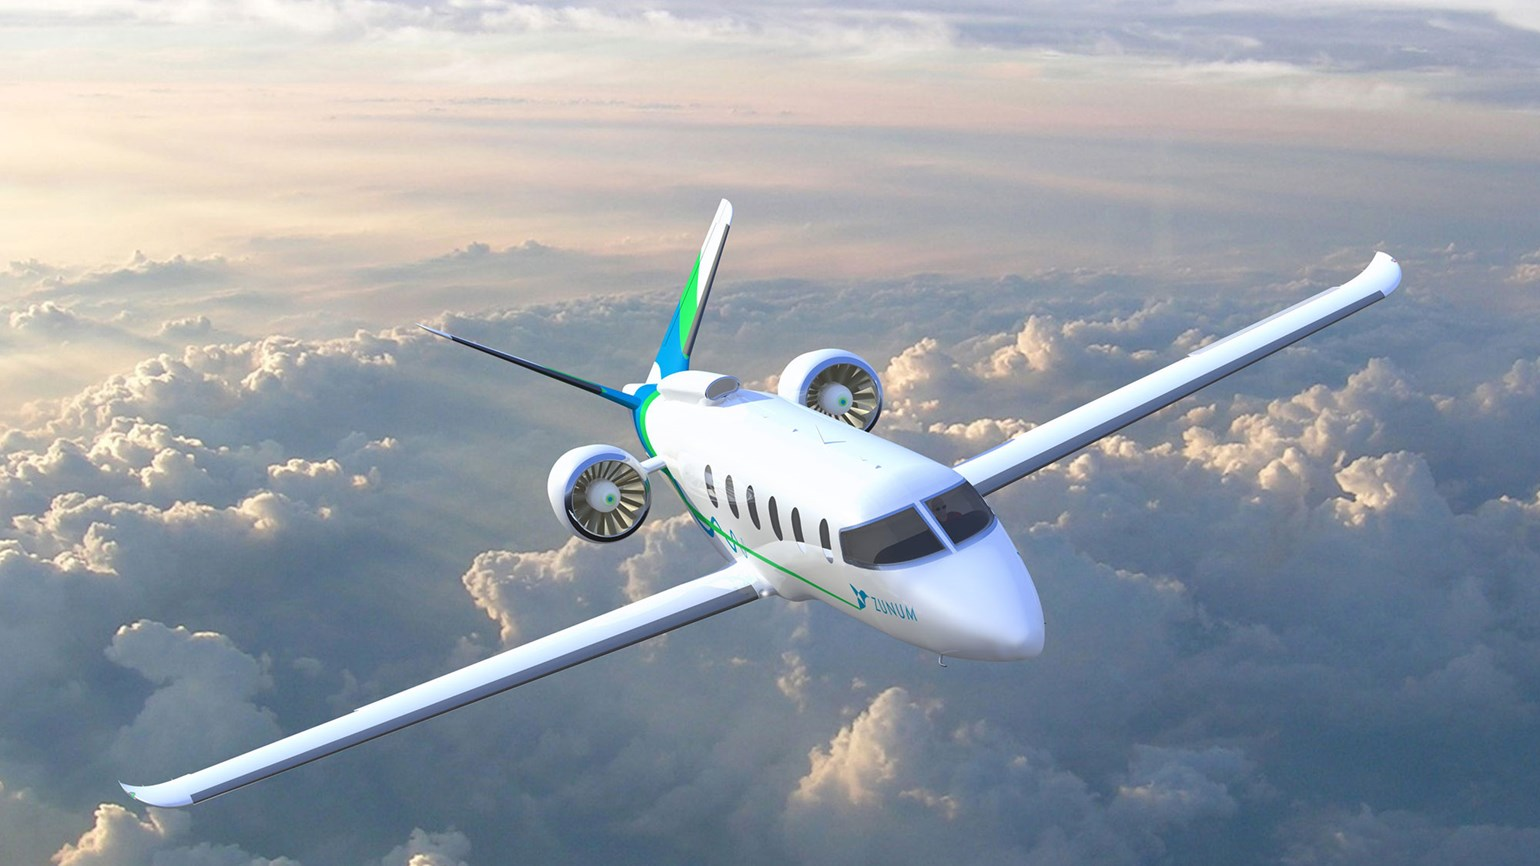 JetSuite to purchase Zunum Aero's hybrid-electric aircraft